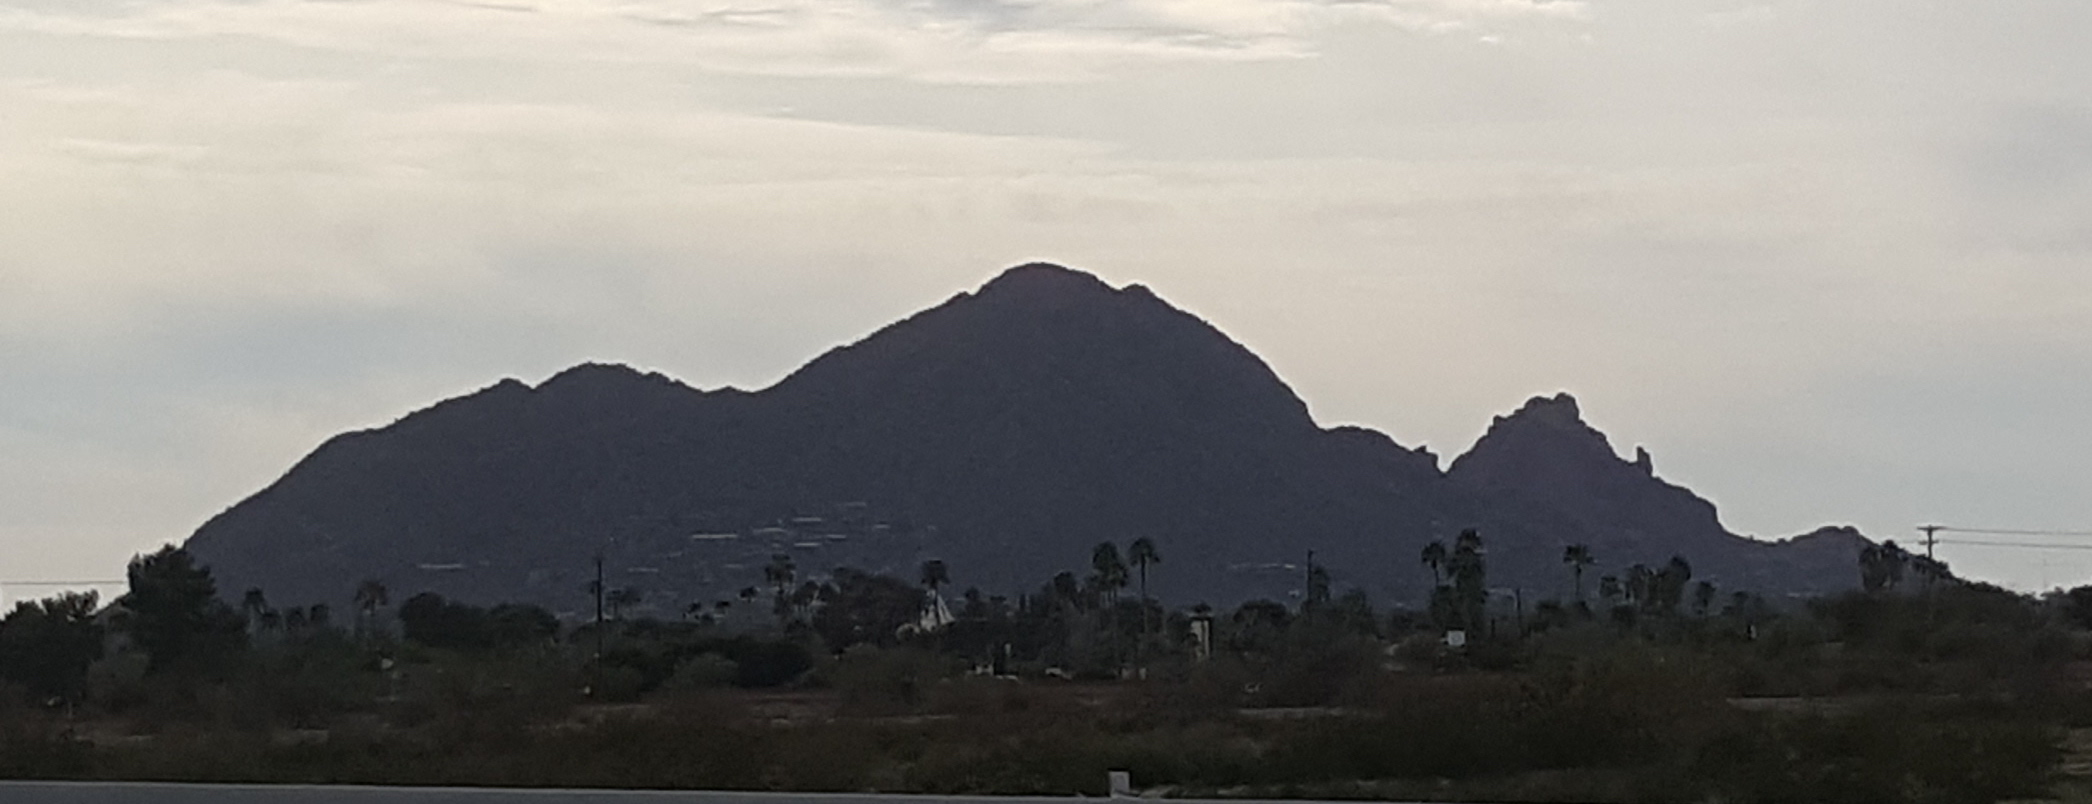 Camelback Mountain at dusk